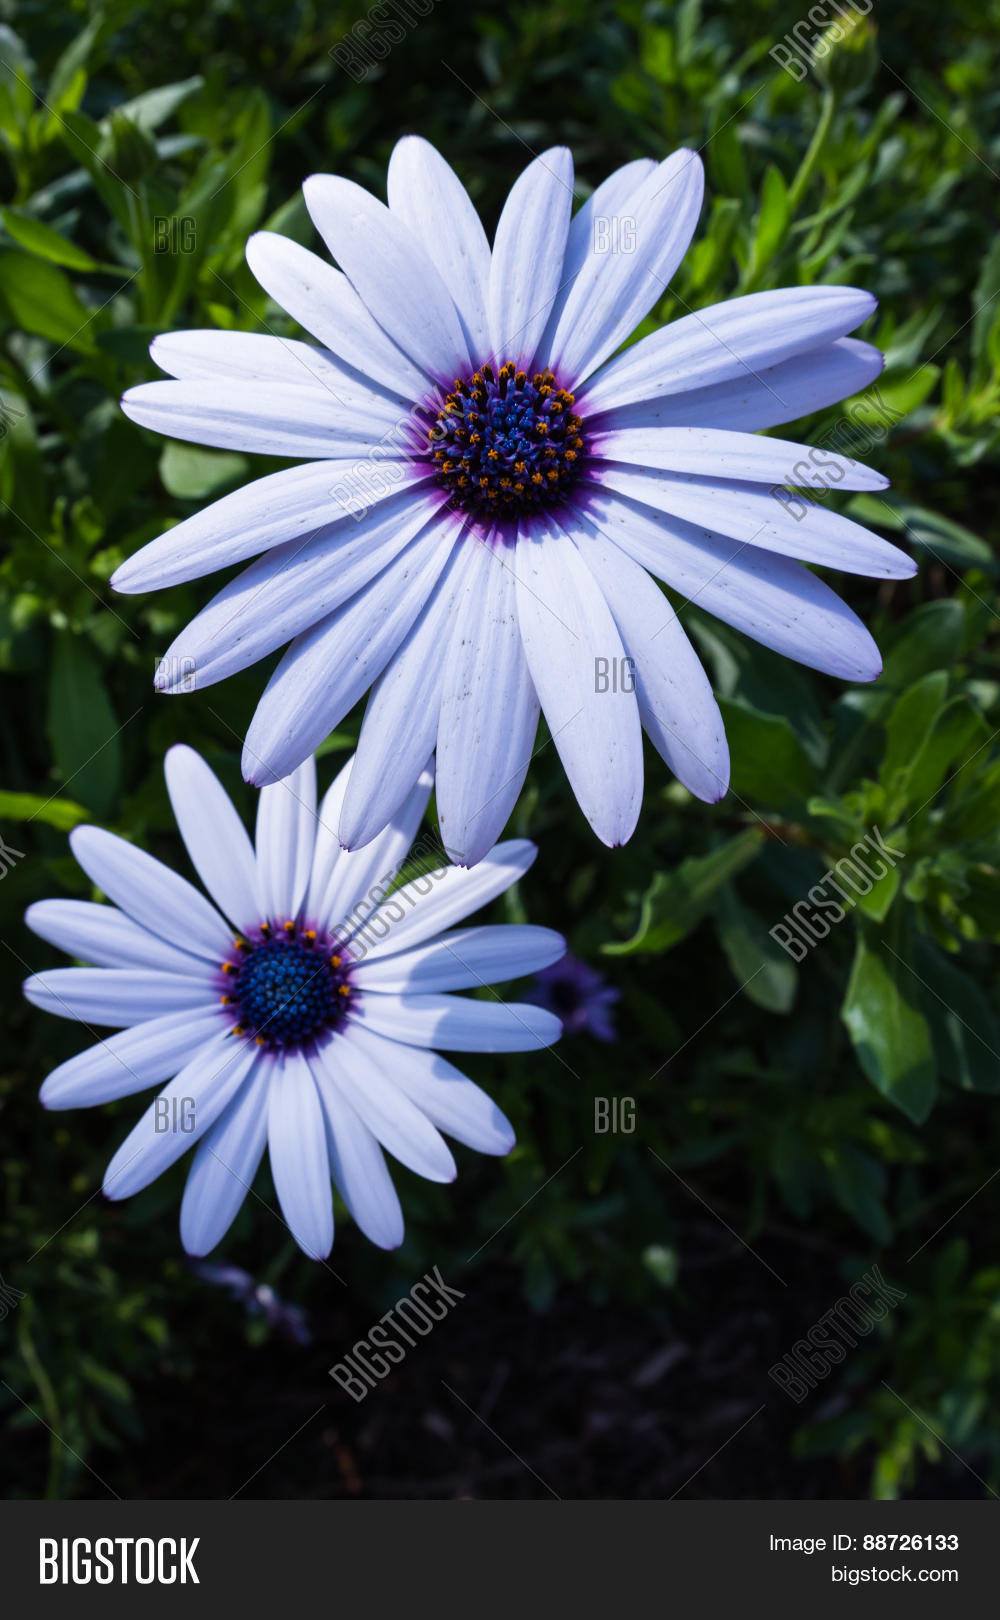 African moon flowers image photo free trial bigstock african moon flowers izmirmasajfo